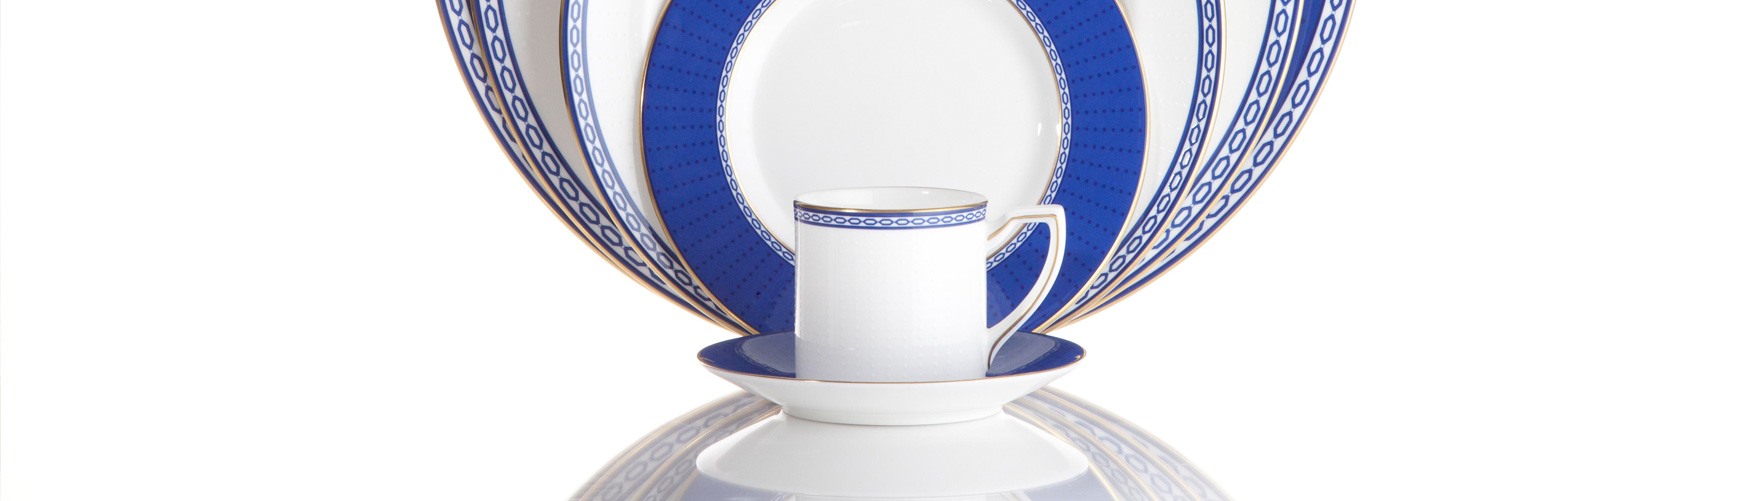 Walpole Fine Bone China | Manufacturer of luxurious high quality bone china in England UK  sc 1 th 120 & Walpole Fine Bone China | Manufacturer of luxurious high quality ...